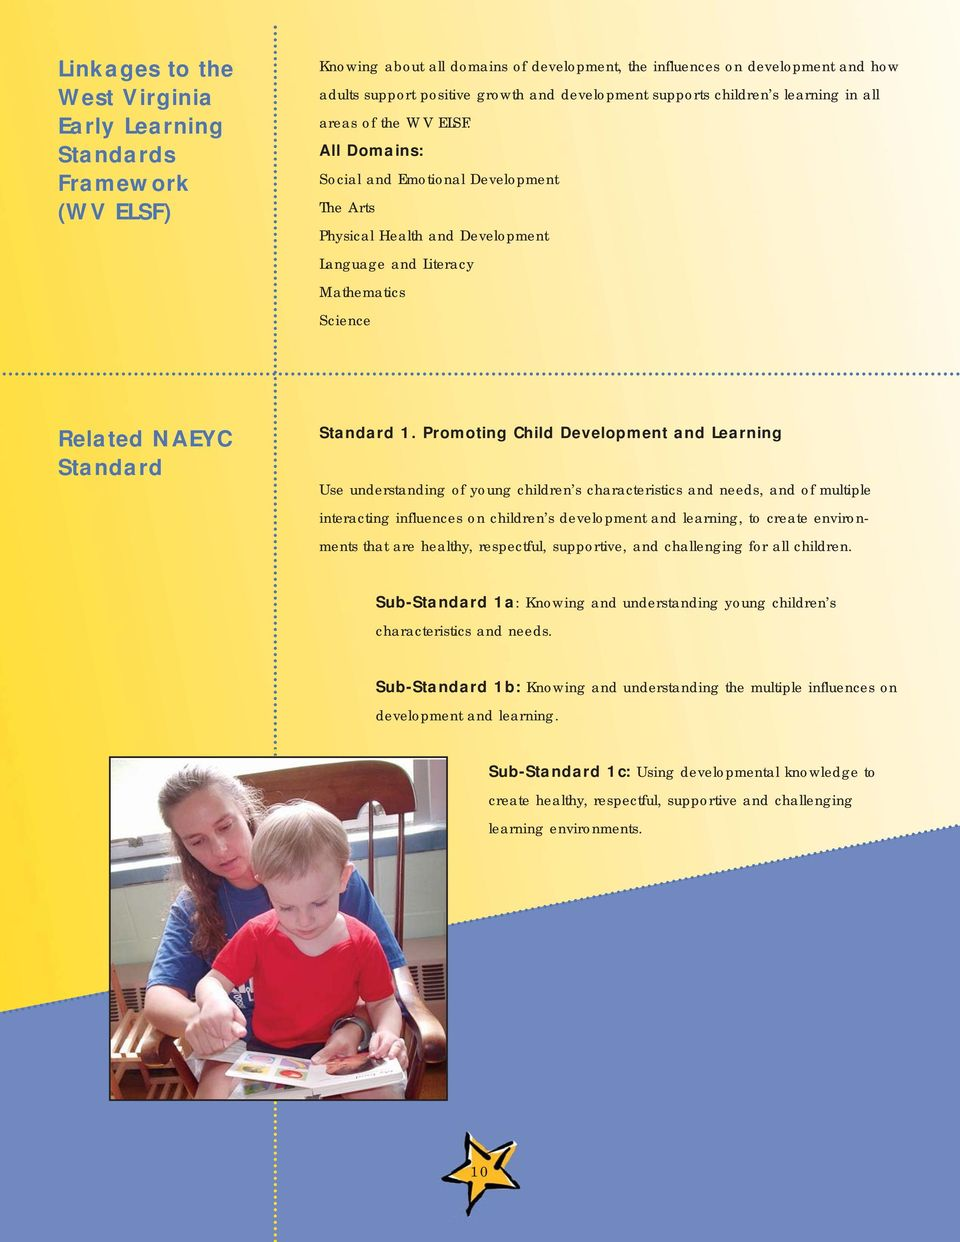 All Domains: Social and Emotional Development The Arts Physical Health and Development Language and Literacy Mathematics Science Related NAEYC Standard Standard 1.